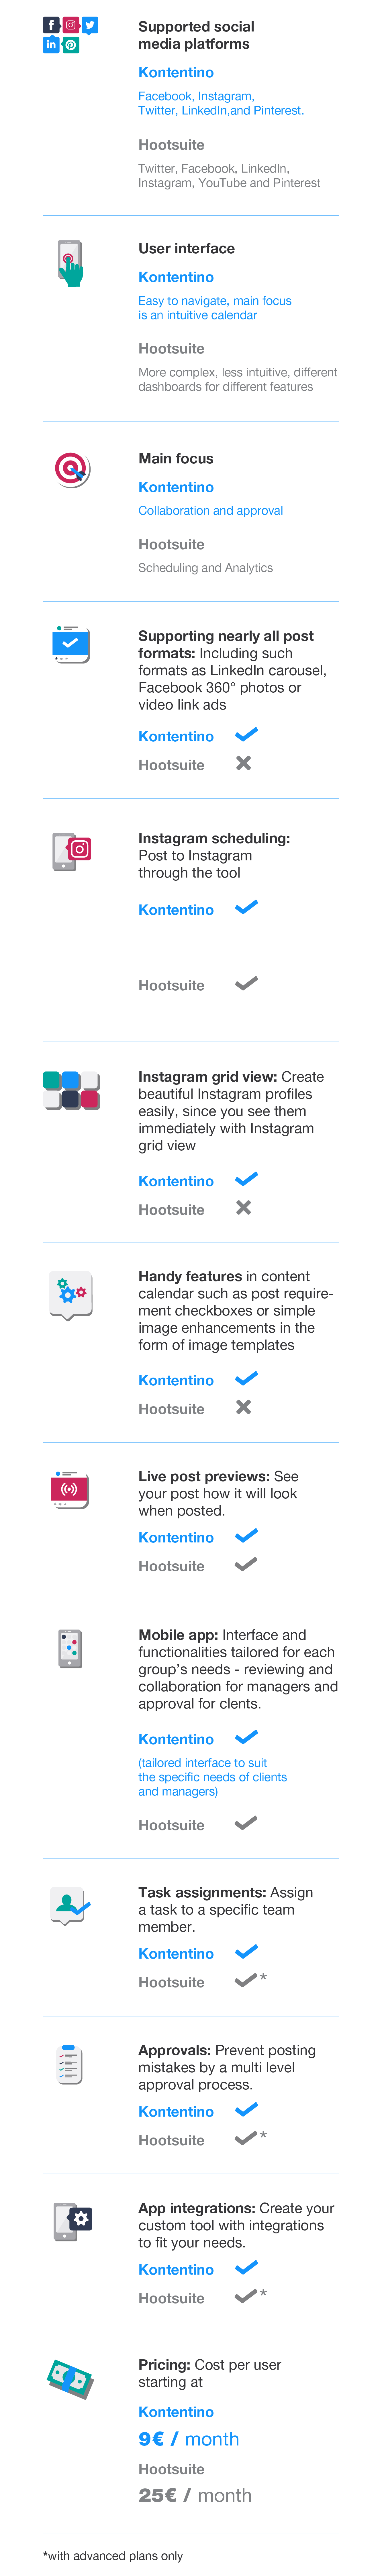 Hootsuite vs. Kontentino features comparison